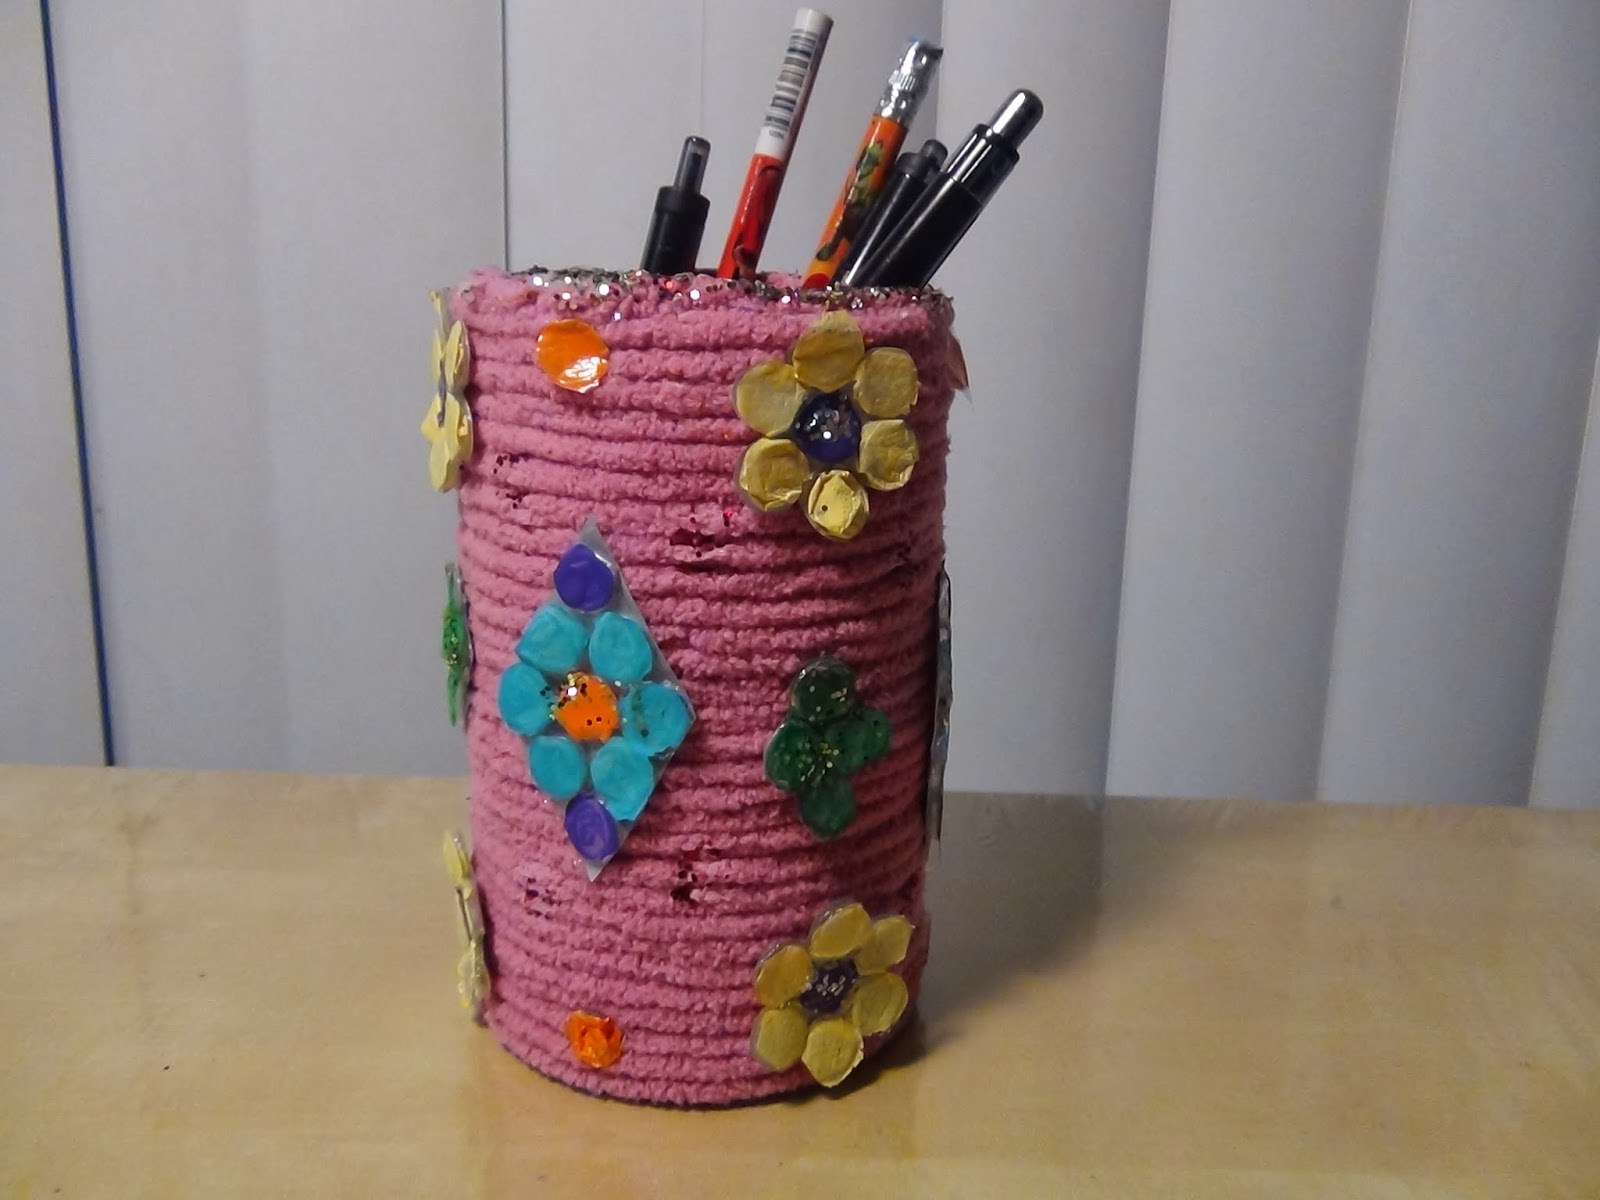 Creative diy crafts diy pen spoon or brush holder with for Home decorations from waste products